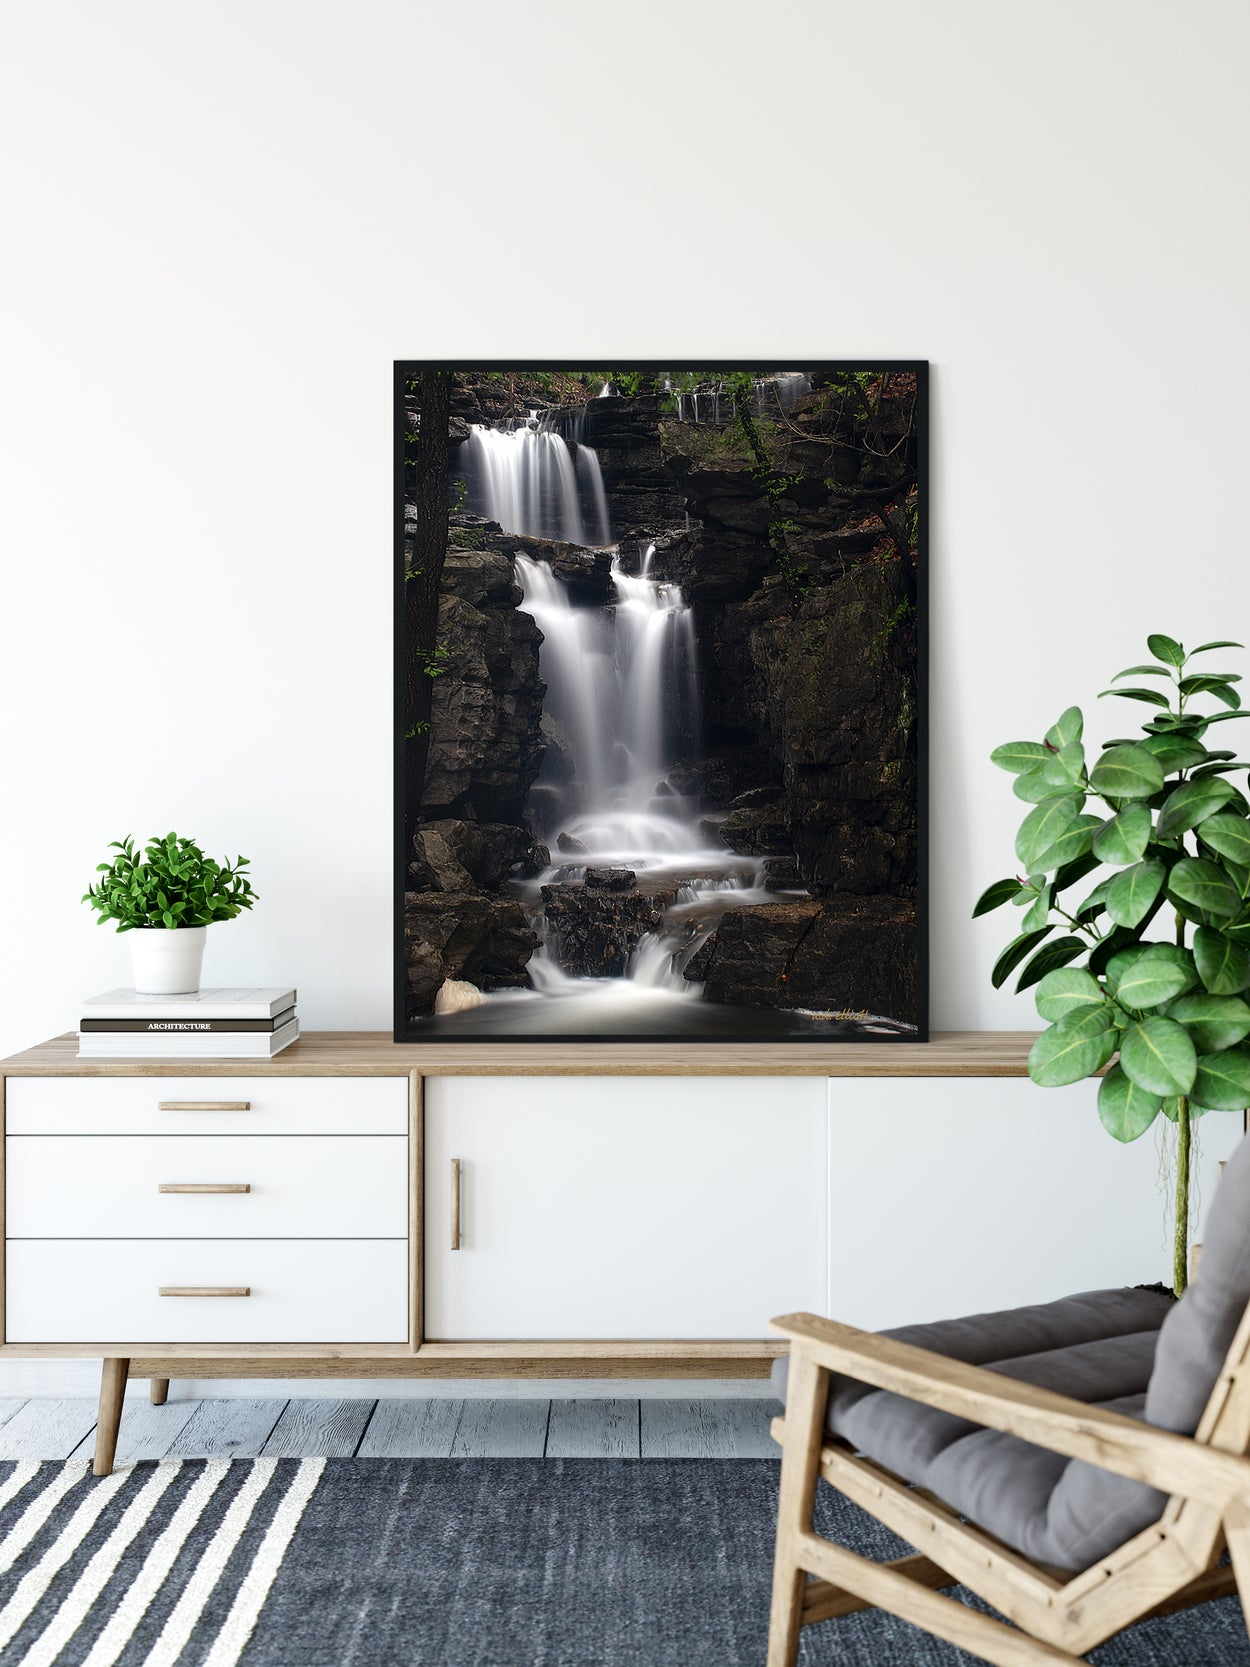 A long exposure photograph of Norwood Falls taken by the photographer a.d. elliott.  Printed on high quality, artist-grade stock and folded around a lightweight frame to give them a gorgeous, gallery-ready appearance. With acid-free ink that will last without fading or chipping, Features a scratch-resistant UV coating. Wipes clean easily with a damp cloth or to remove dust, vacuum gently using a soft brush attachment.